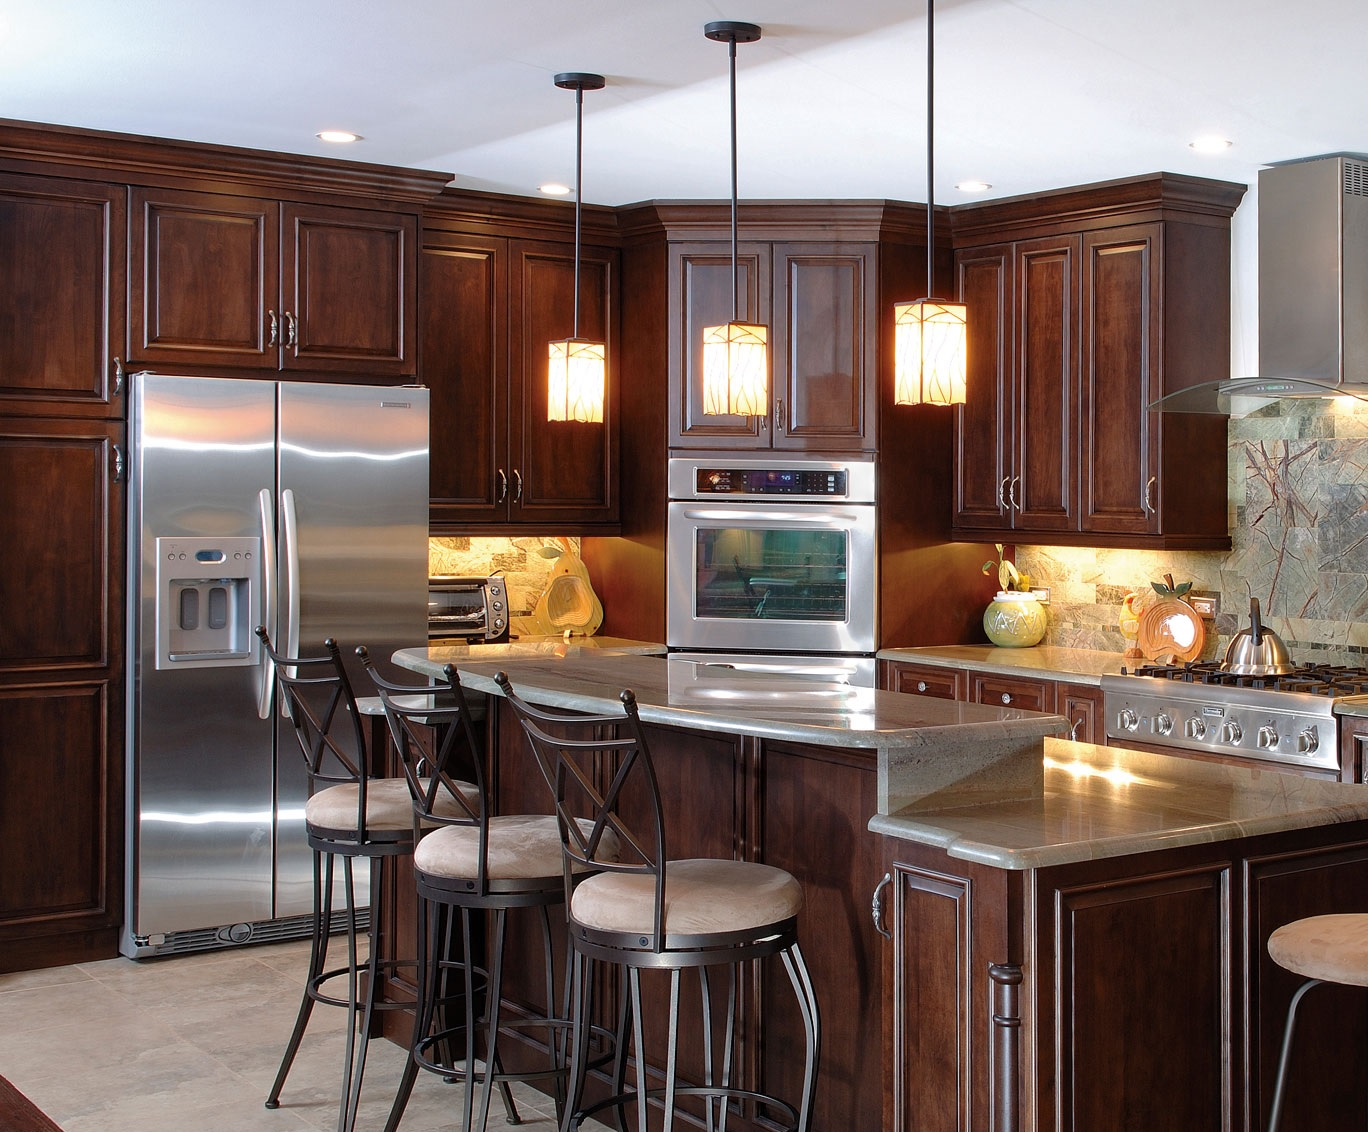 kitchen cabinet guide prices materials installations repairs - Kitchen Cabinets Prices